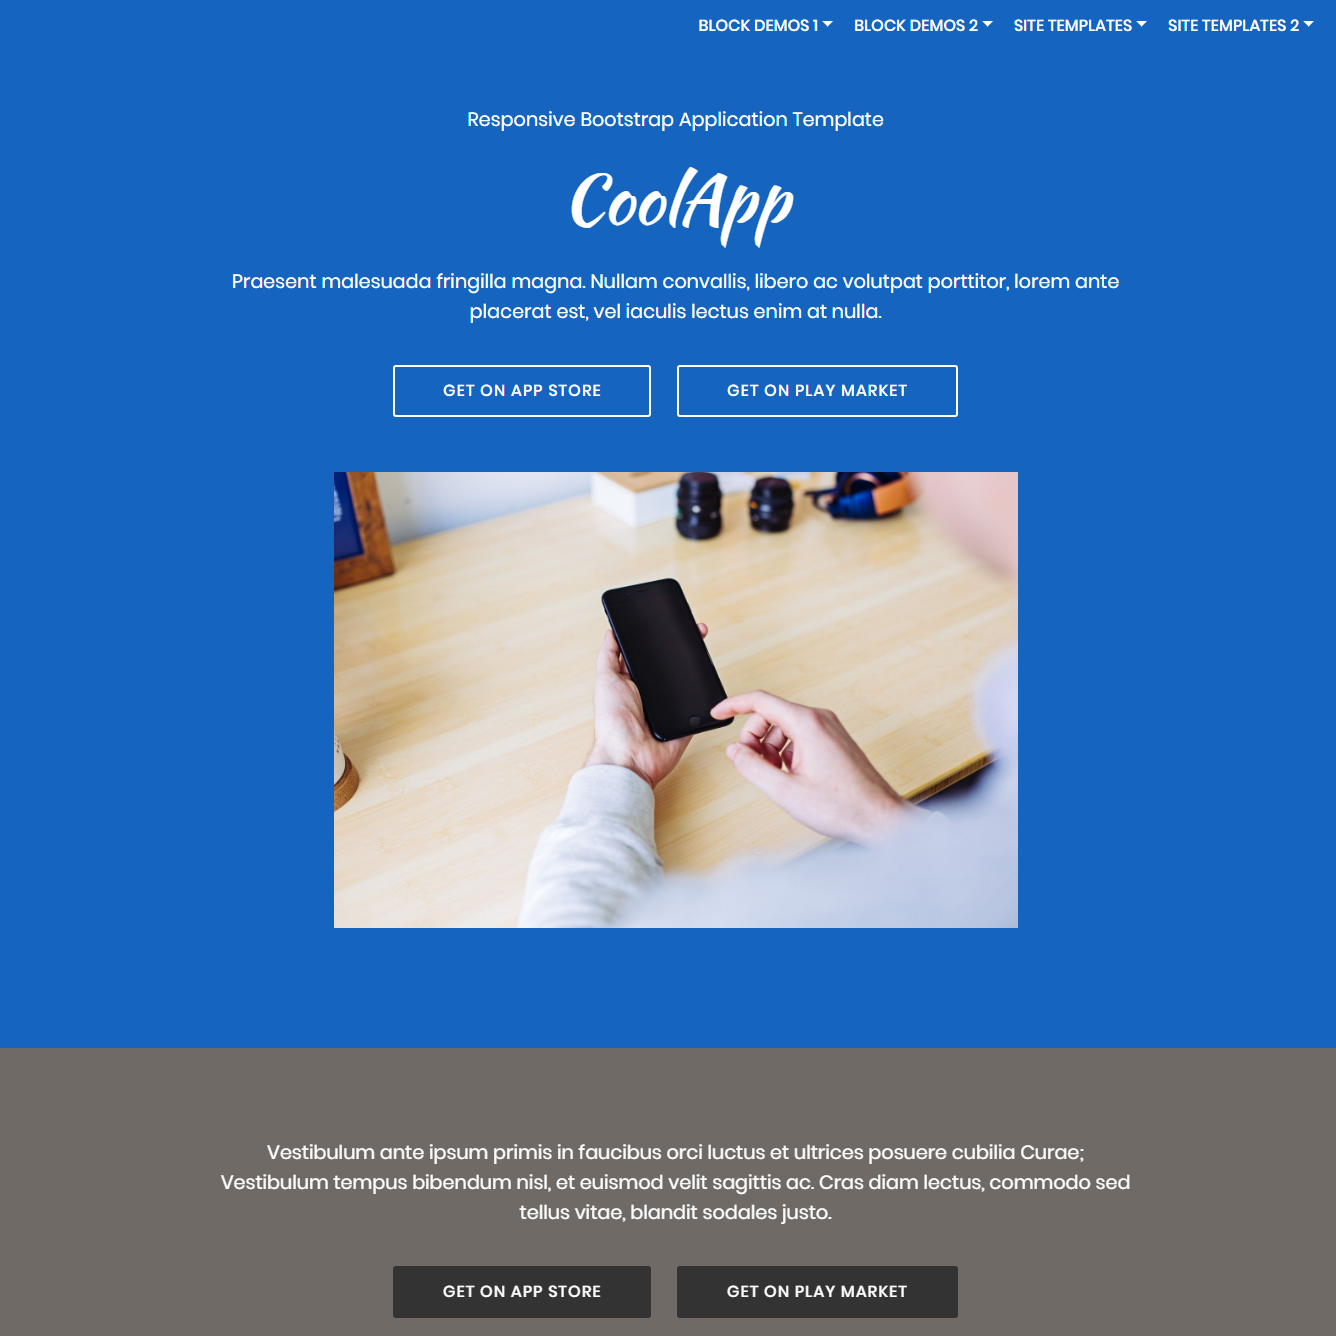 Free Bootstrap Application Templates